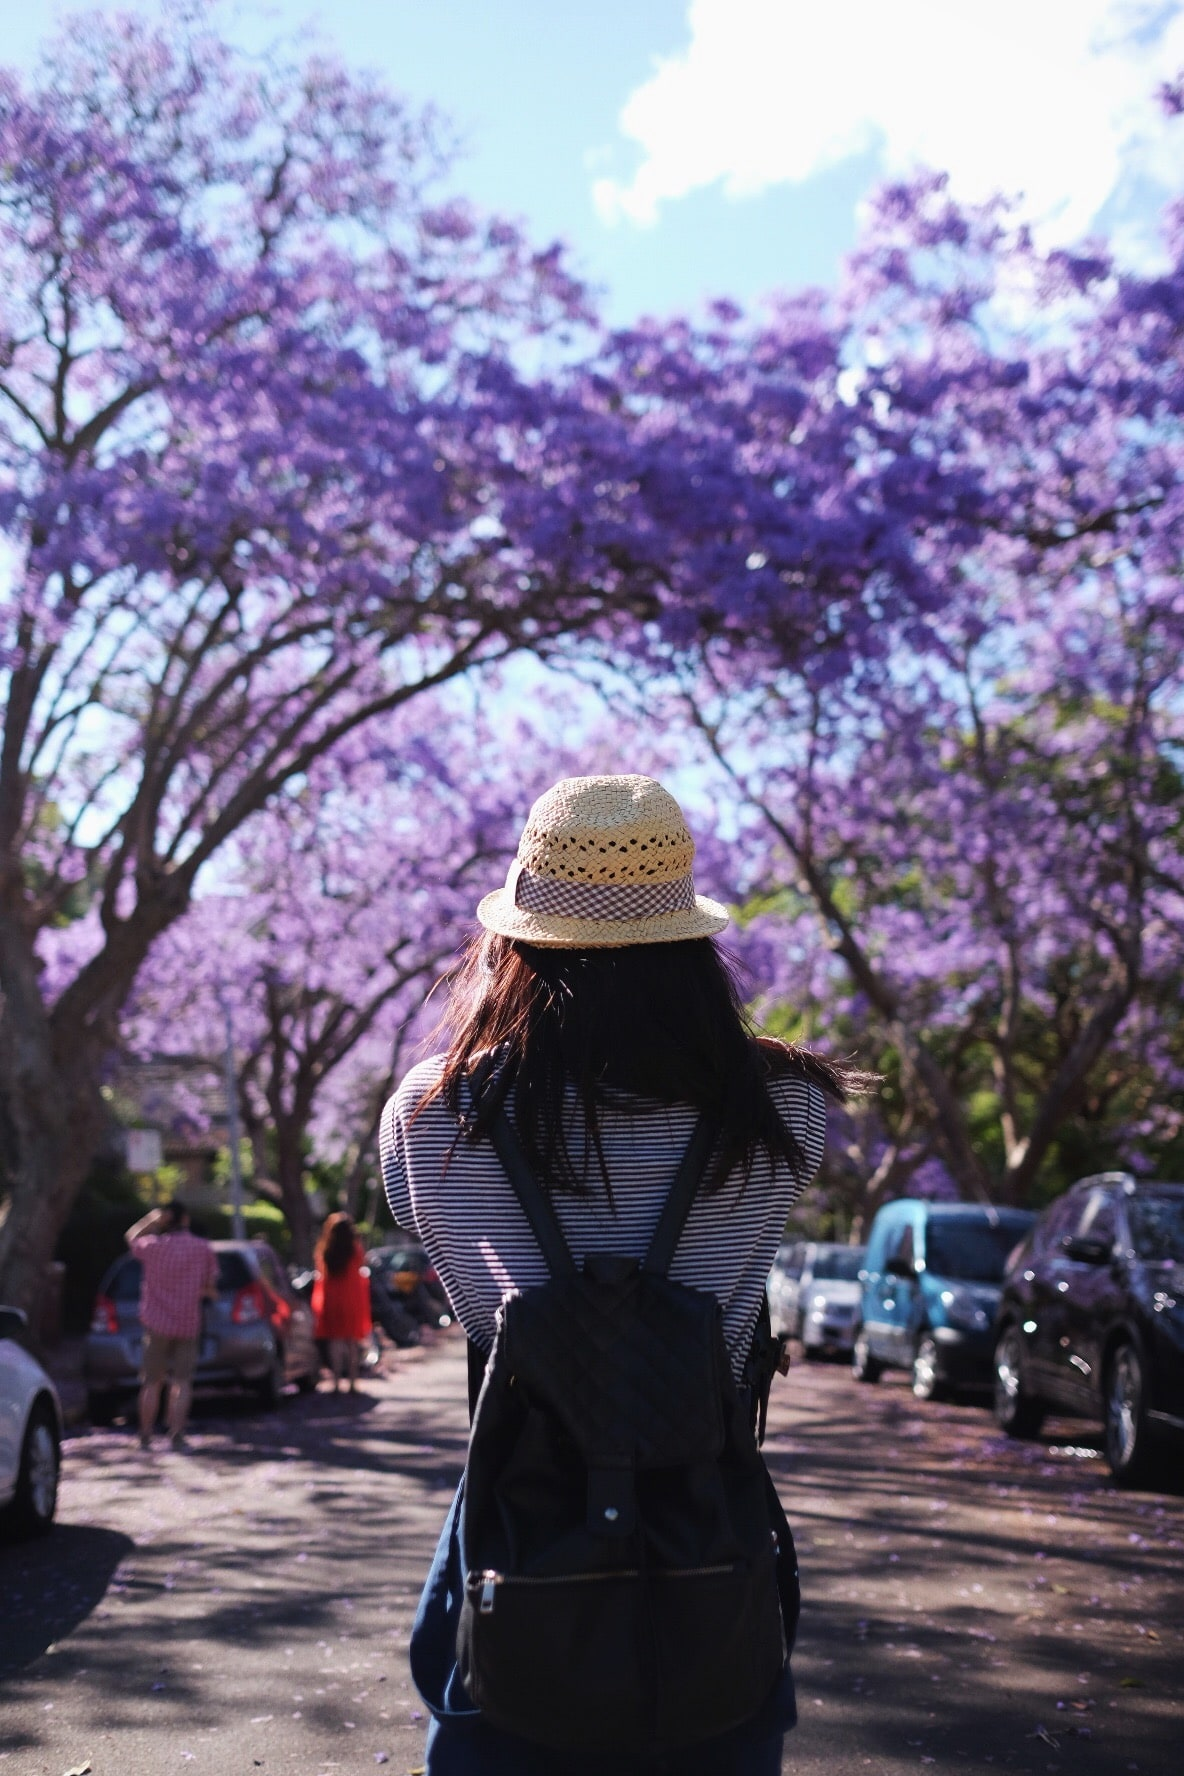 Jacarandas at McDougall St in Kirribilli, Sydney